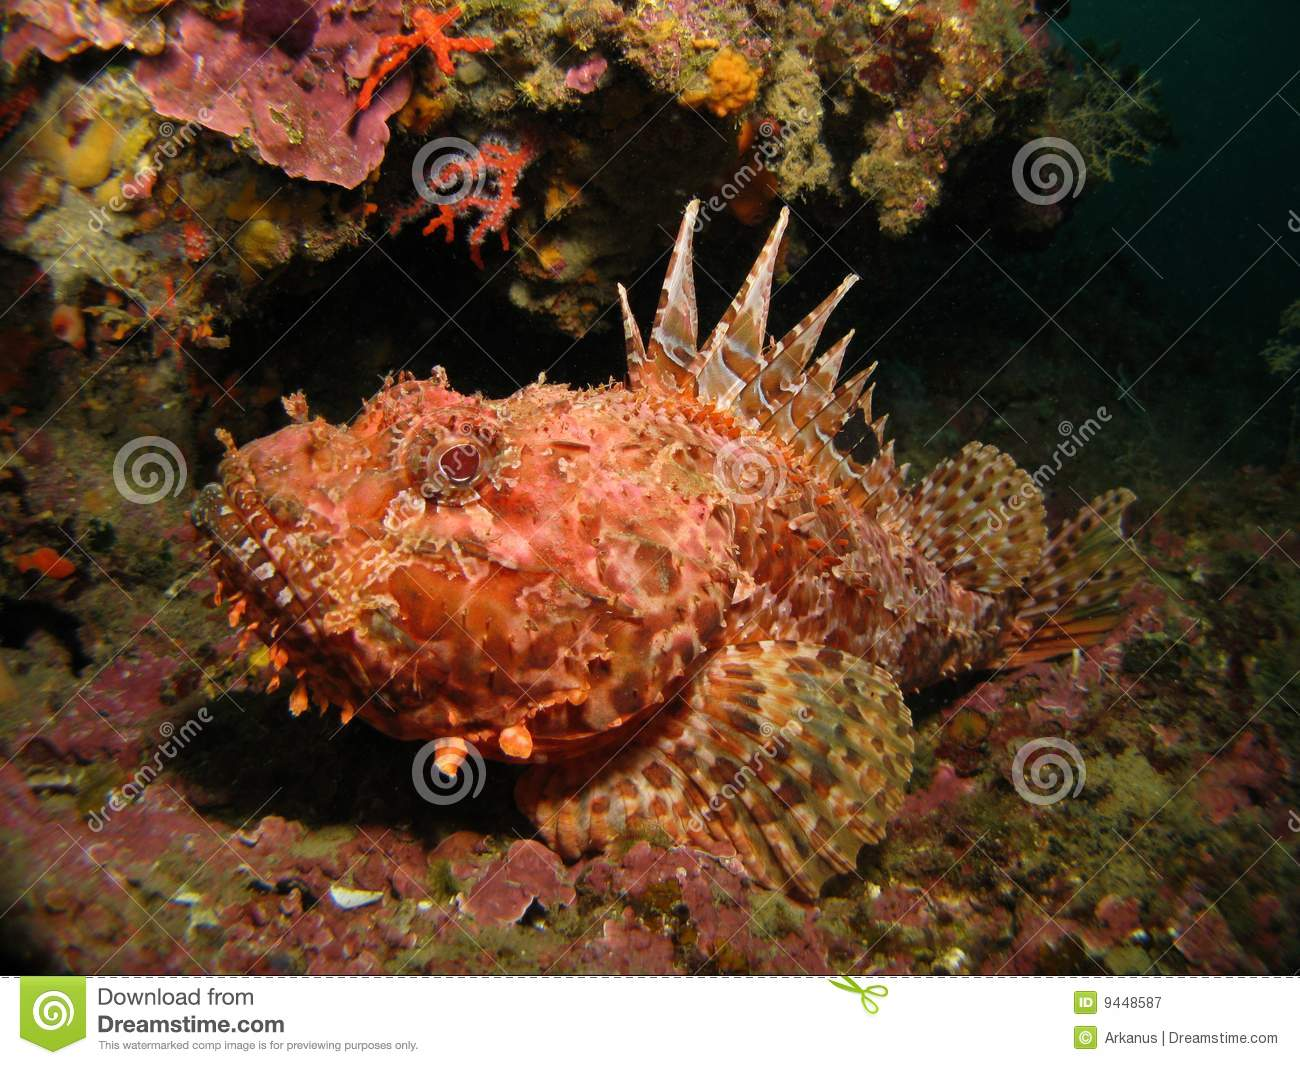 Rock fish royalty free stock photography image 9448587 for Step 2 rocking fish